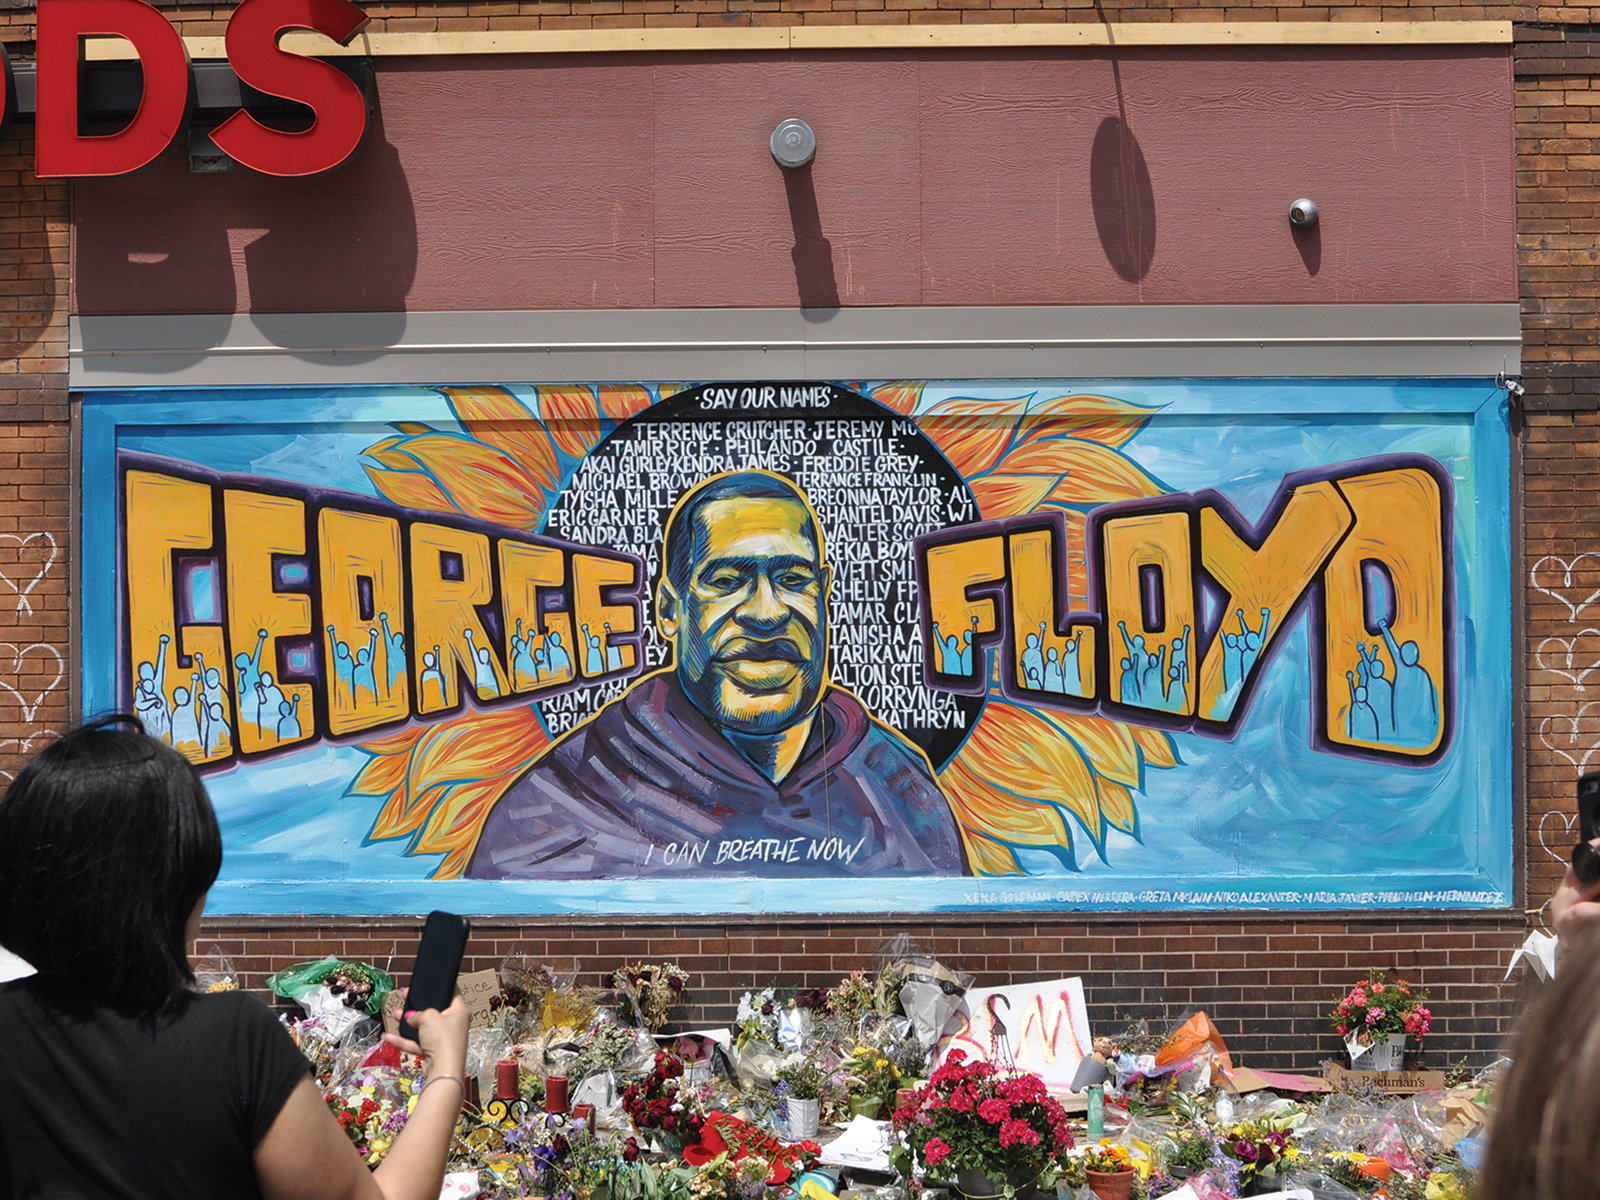 The mural of George Floyd outside of the Cup Foods building in South Minneapolis